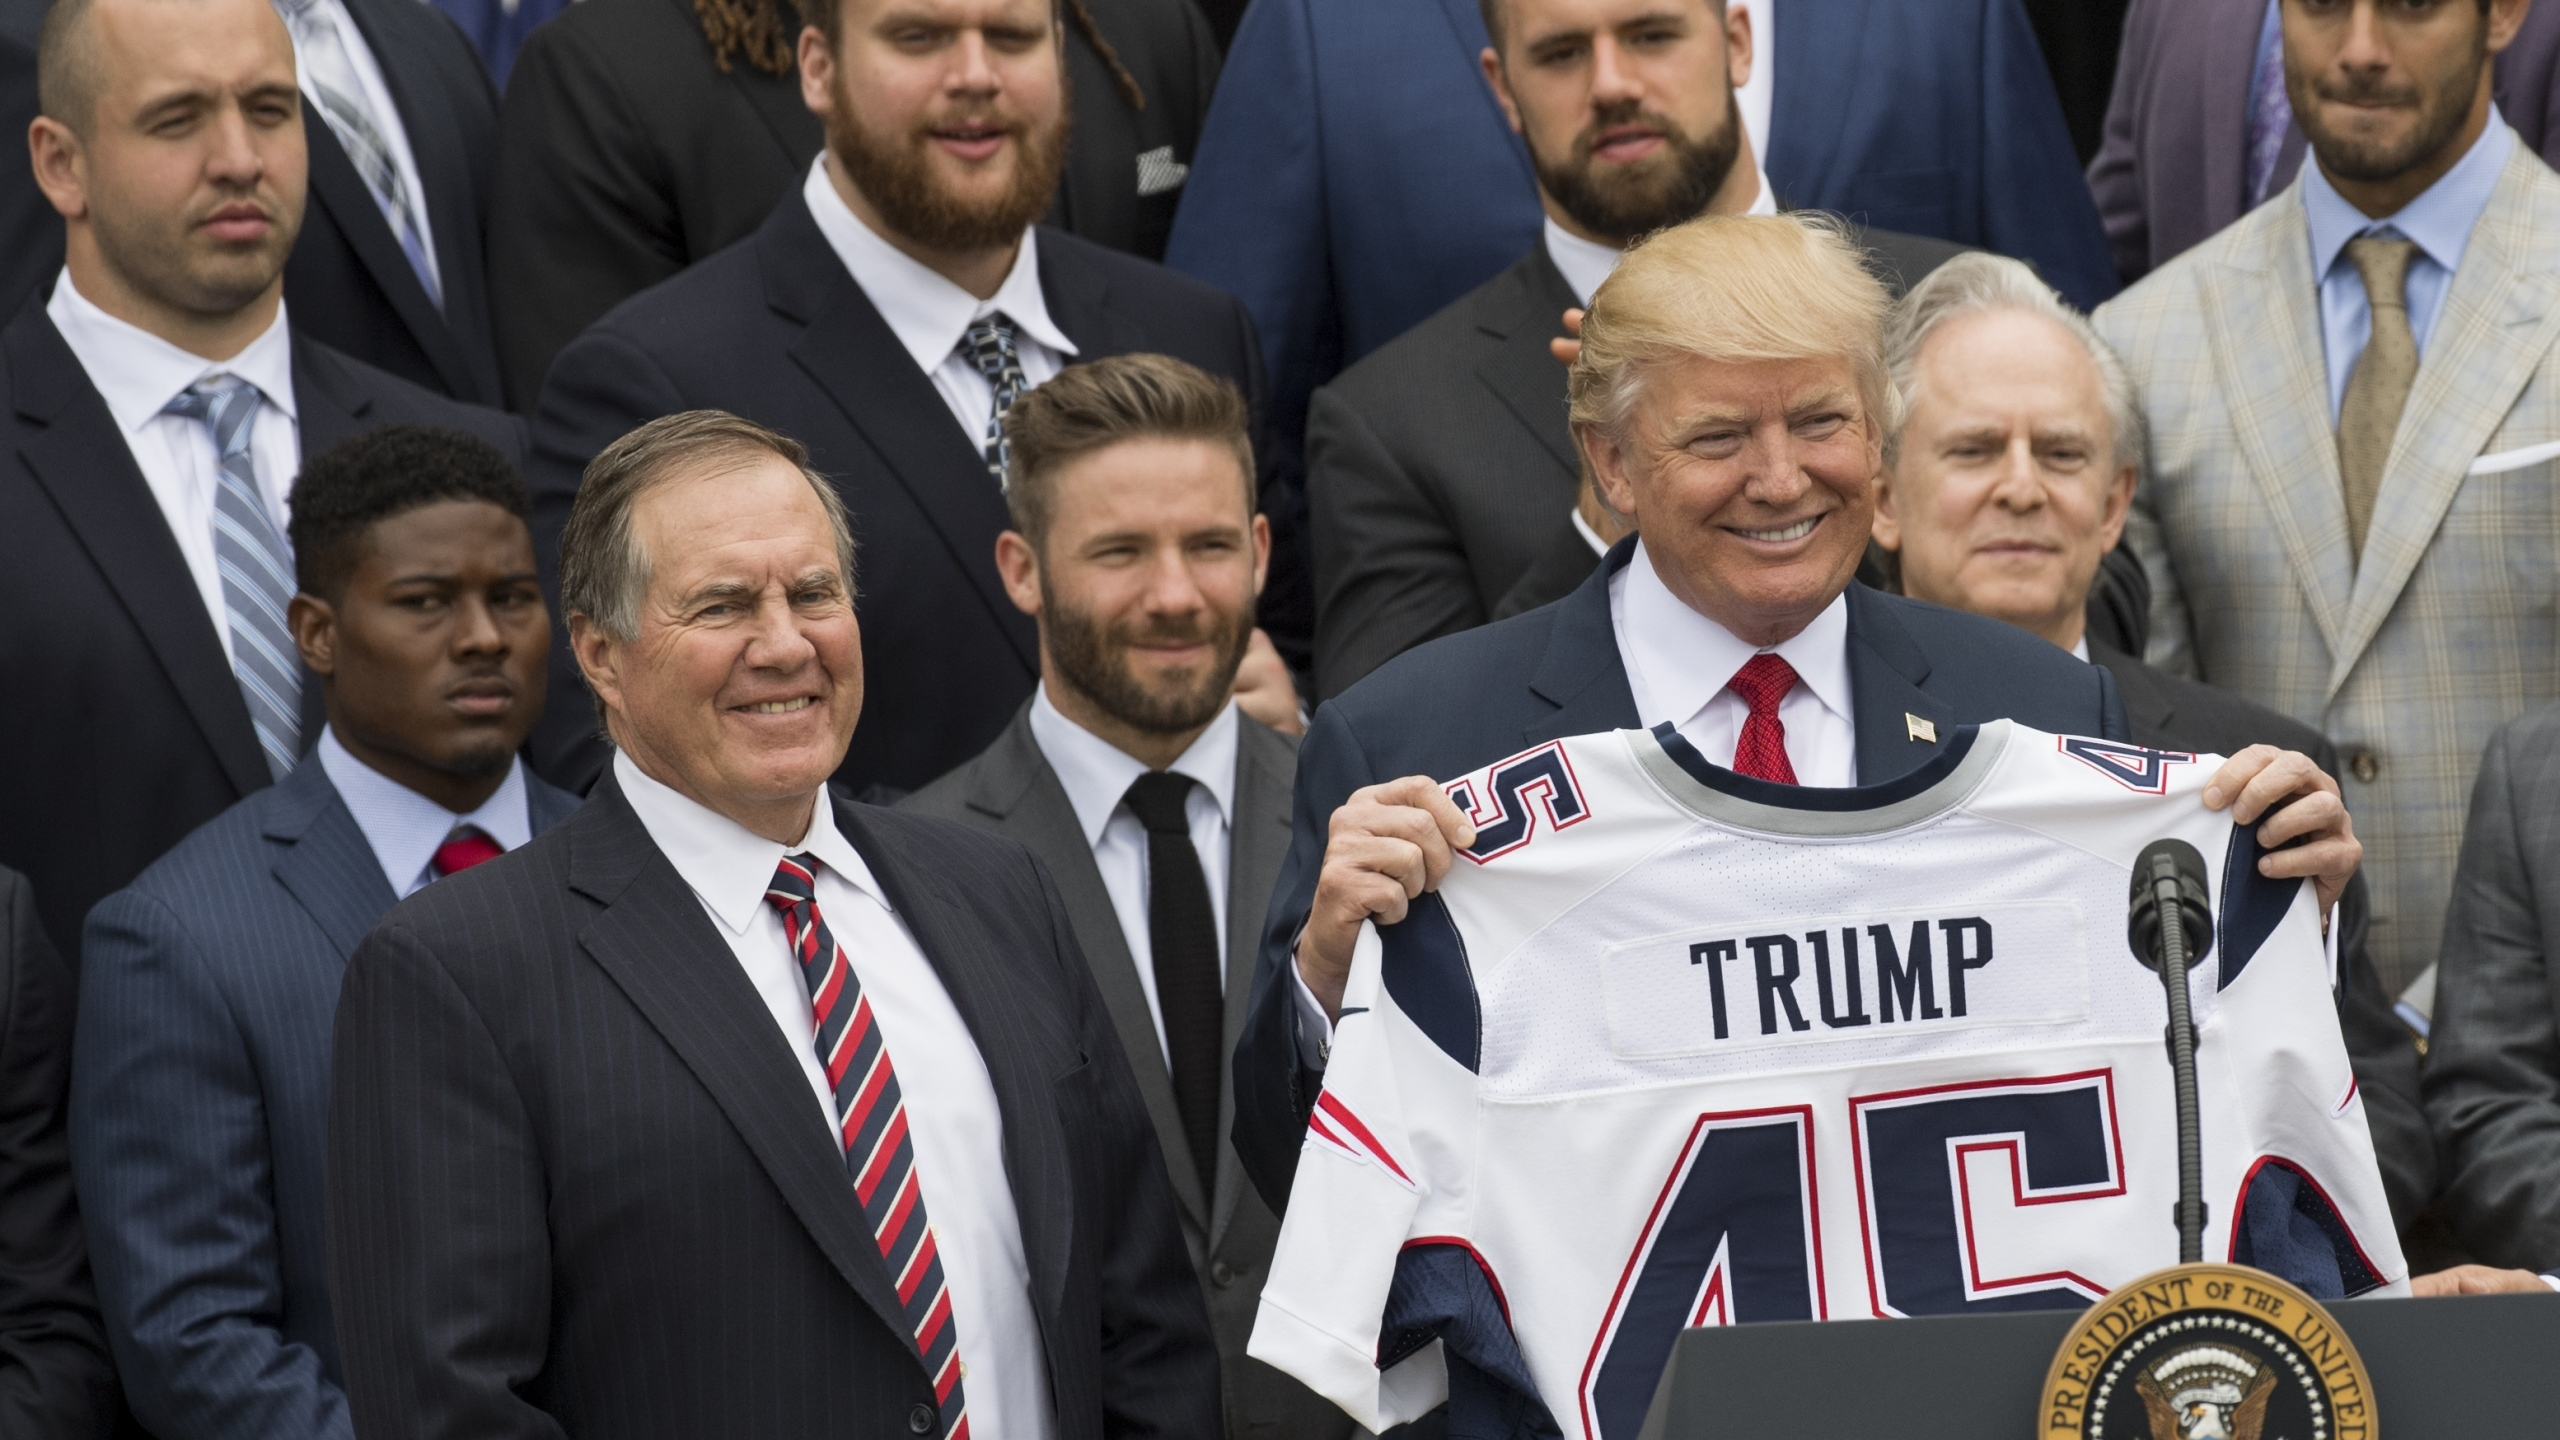 Donald Trump holds a jersey given to him by New England Patriots head coach Bill Belichick alongside members of the team during a ceremony honoring them as 2017 Super Bowl Champions on the South Lawn of the White House in Washington, D.C., on April 19, 2017. (Credit: SAUL LOEB/AFP/Getty Images)